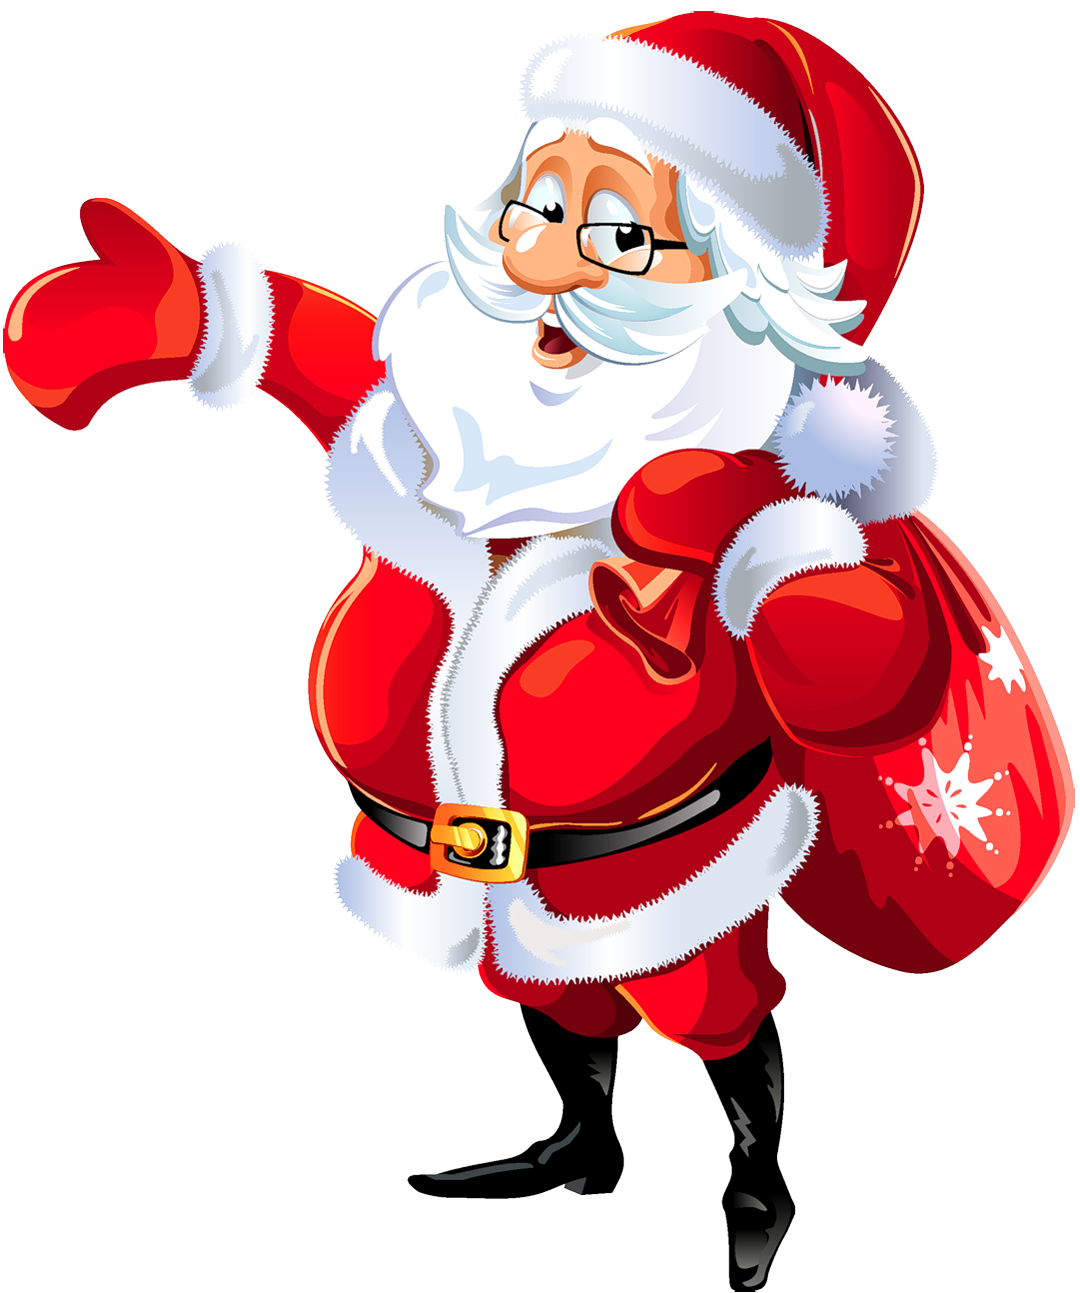 Free Clip Art from Vintage Holiday Crafts Santa Claus